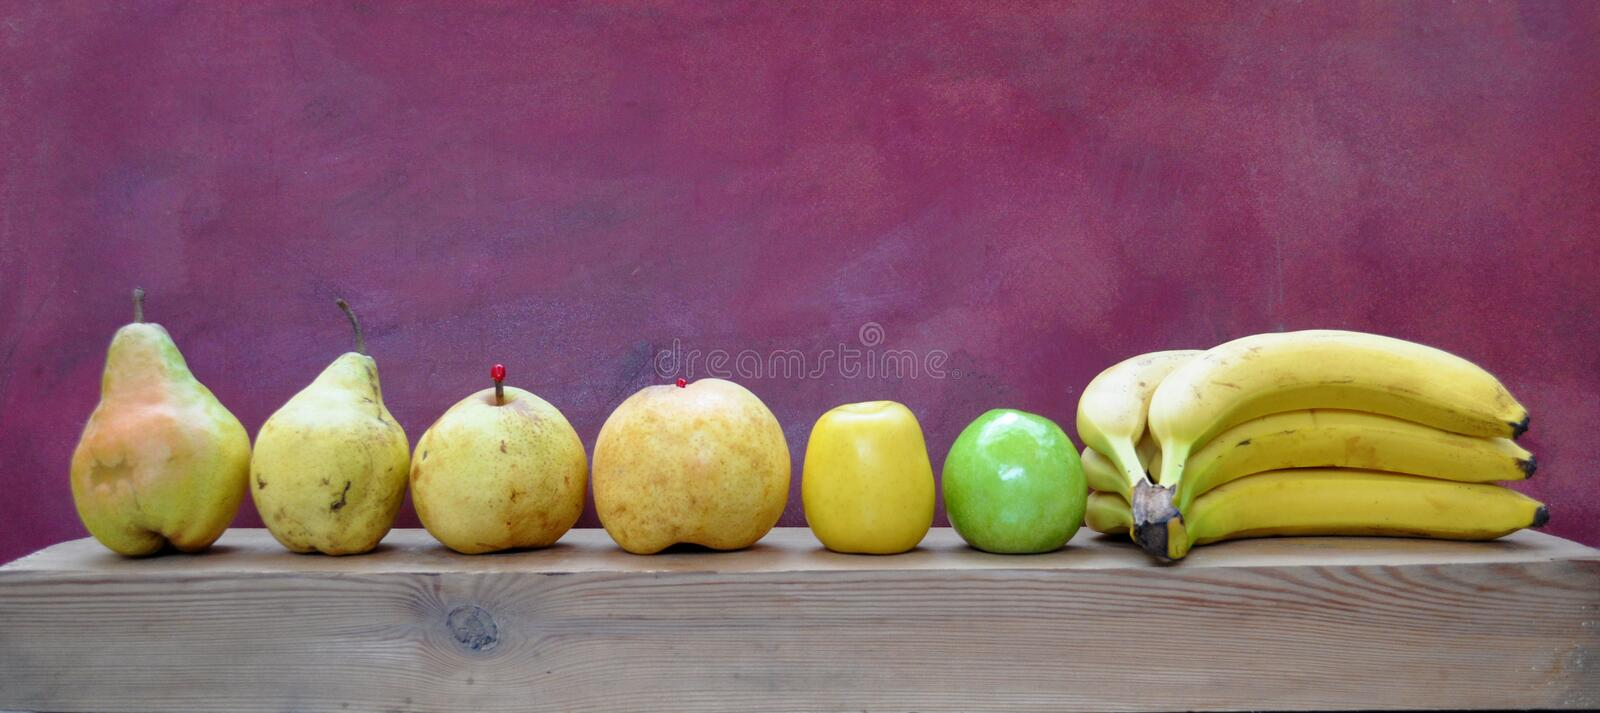 Row of yellow fruits and one green apple royalty free stock image